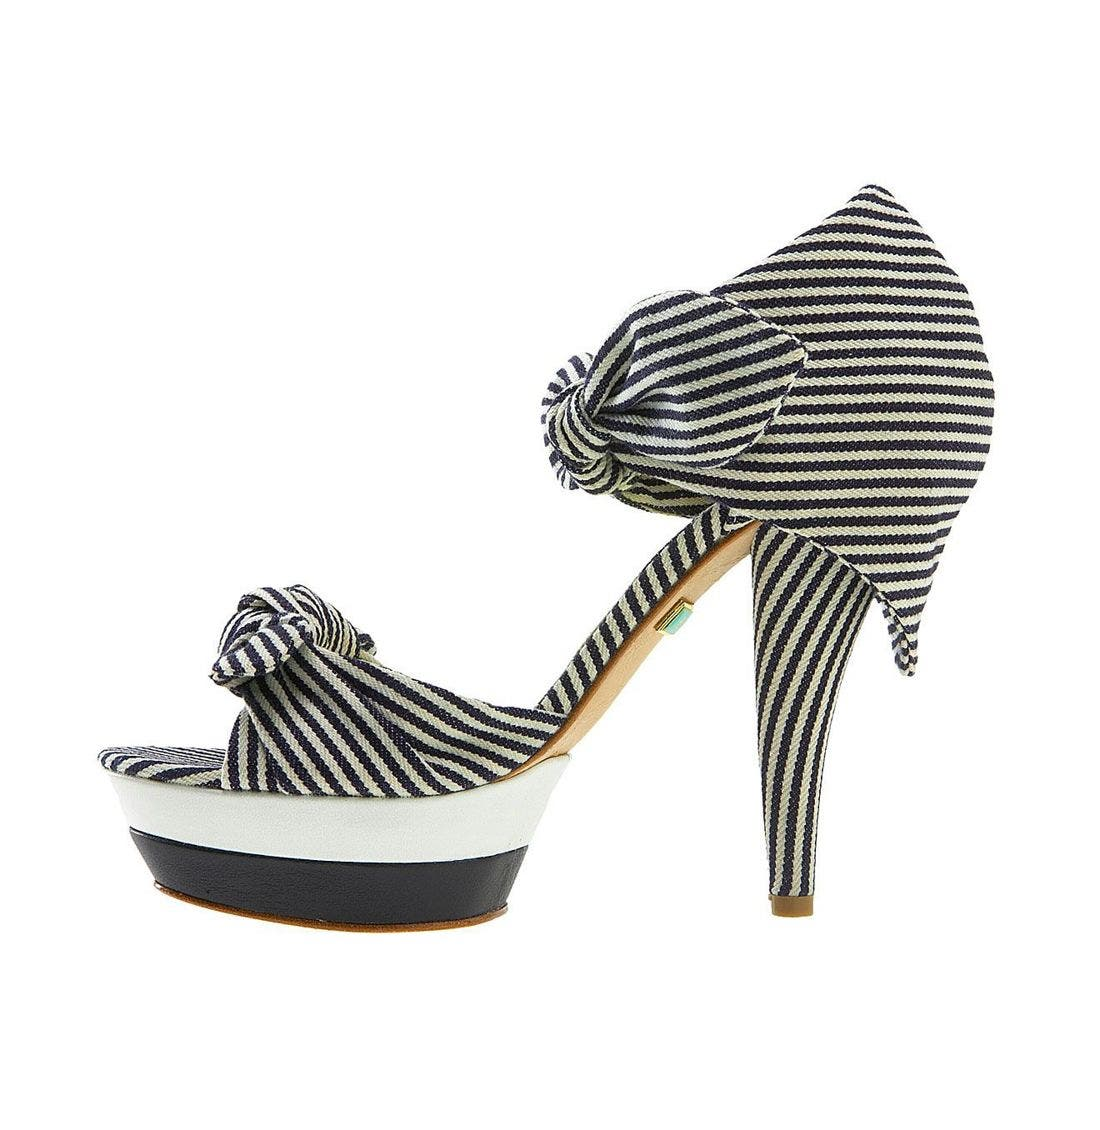 Alternate Image 2  - L.A.M.B. 'Dominic' Striped Sandal